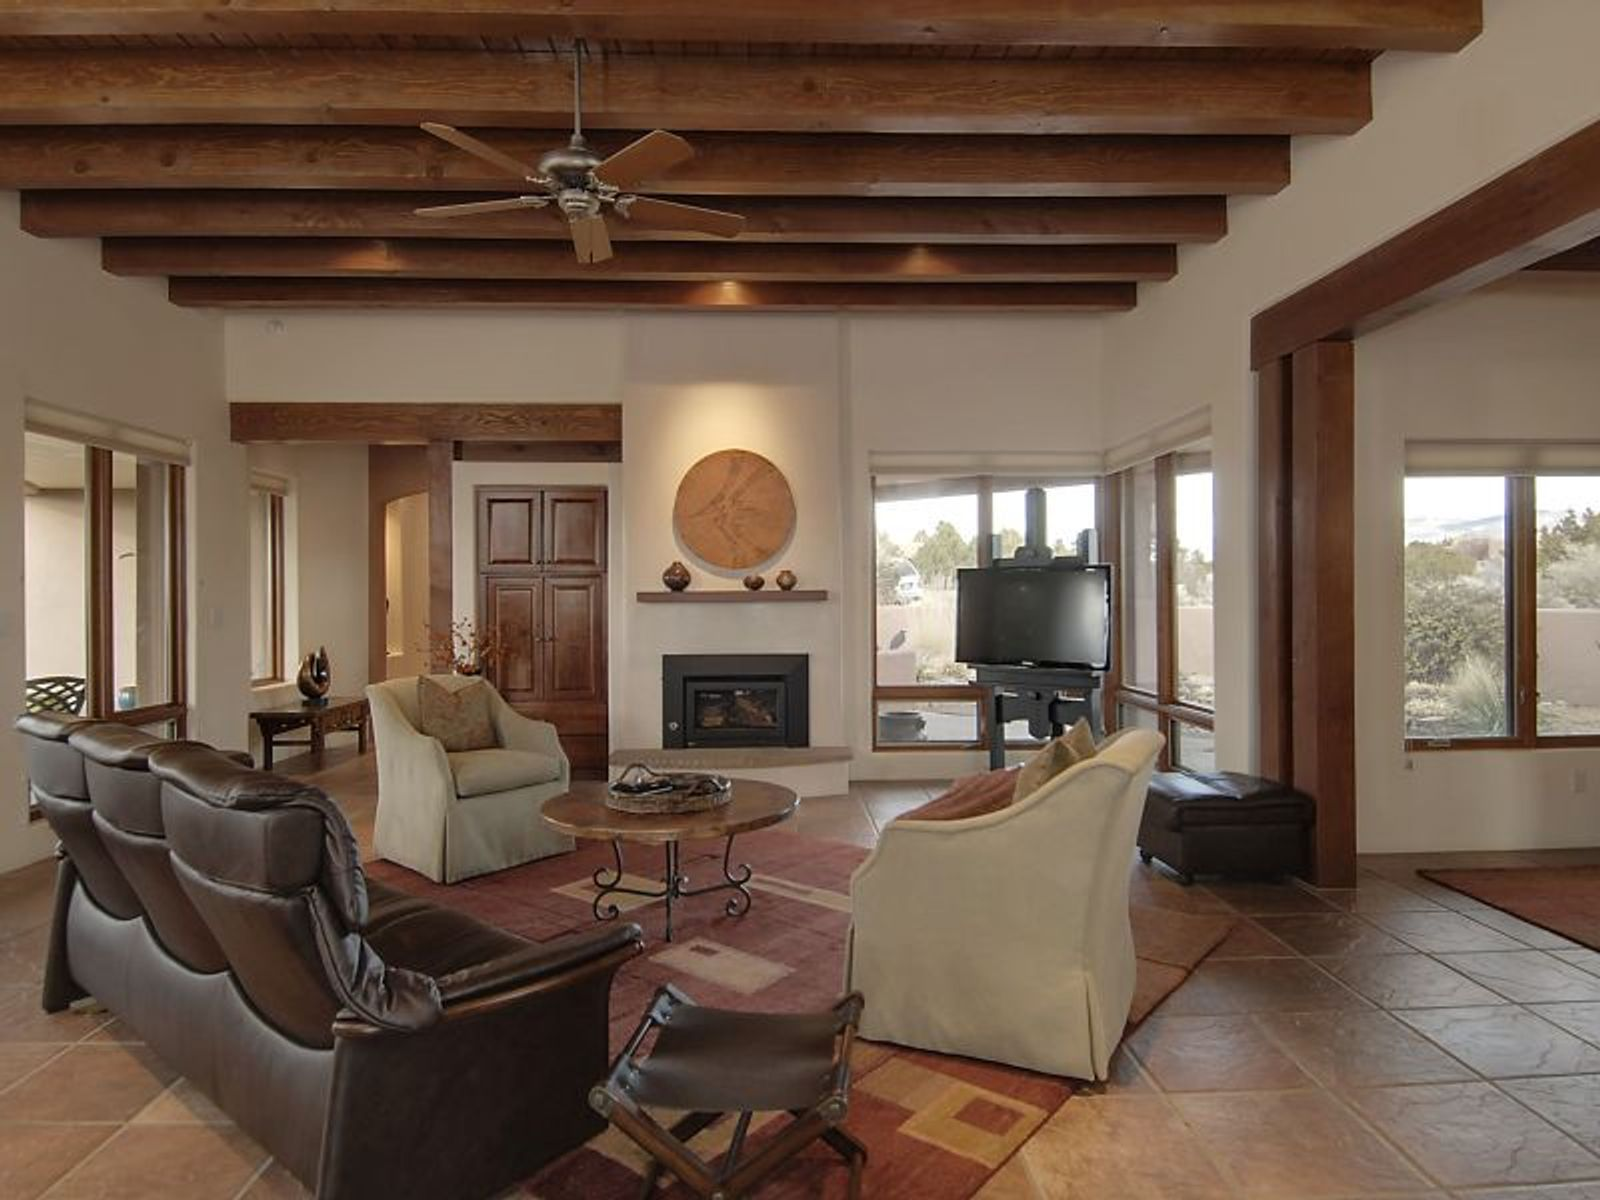 3 Star Splash, Santa Fe NM Single Family Home - Santa Fe Real Estate